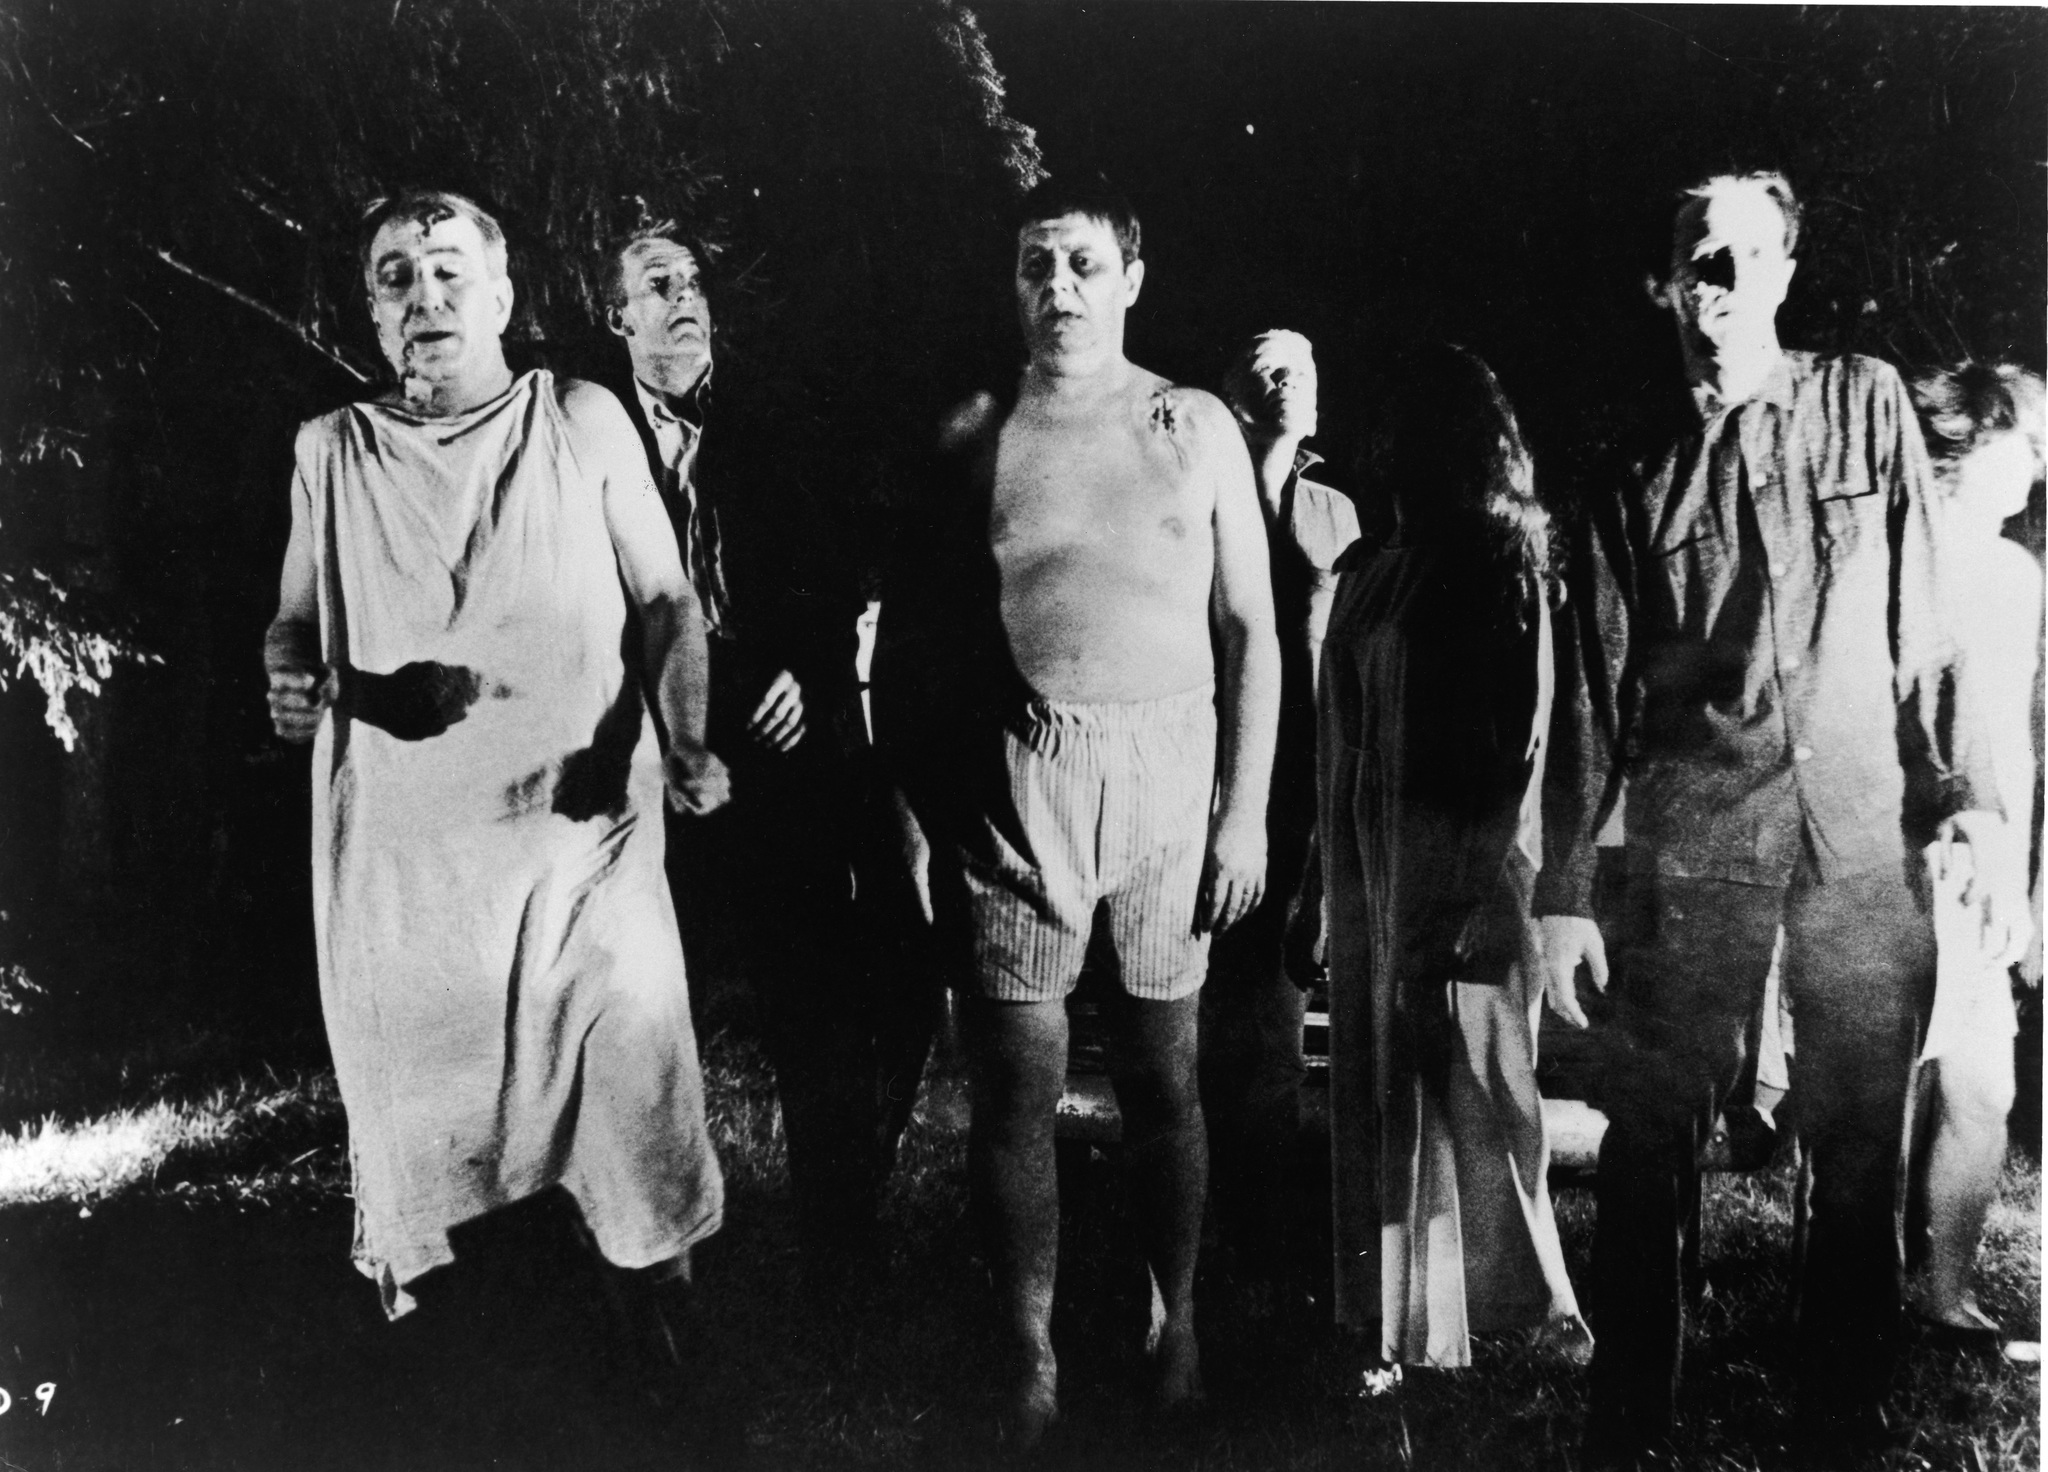 File:Zombies NightoftheLivingDead.jpg